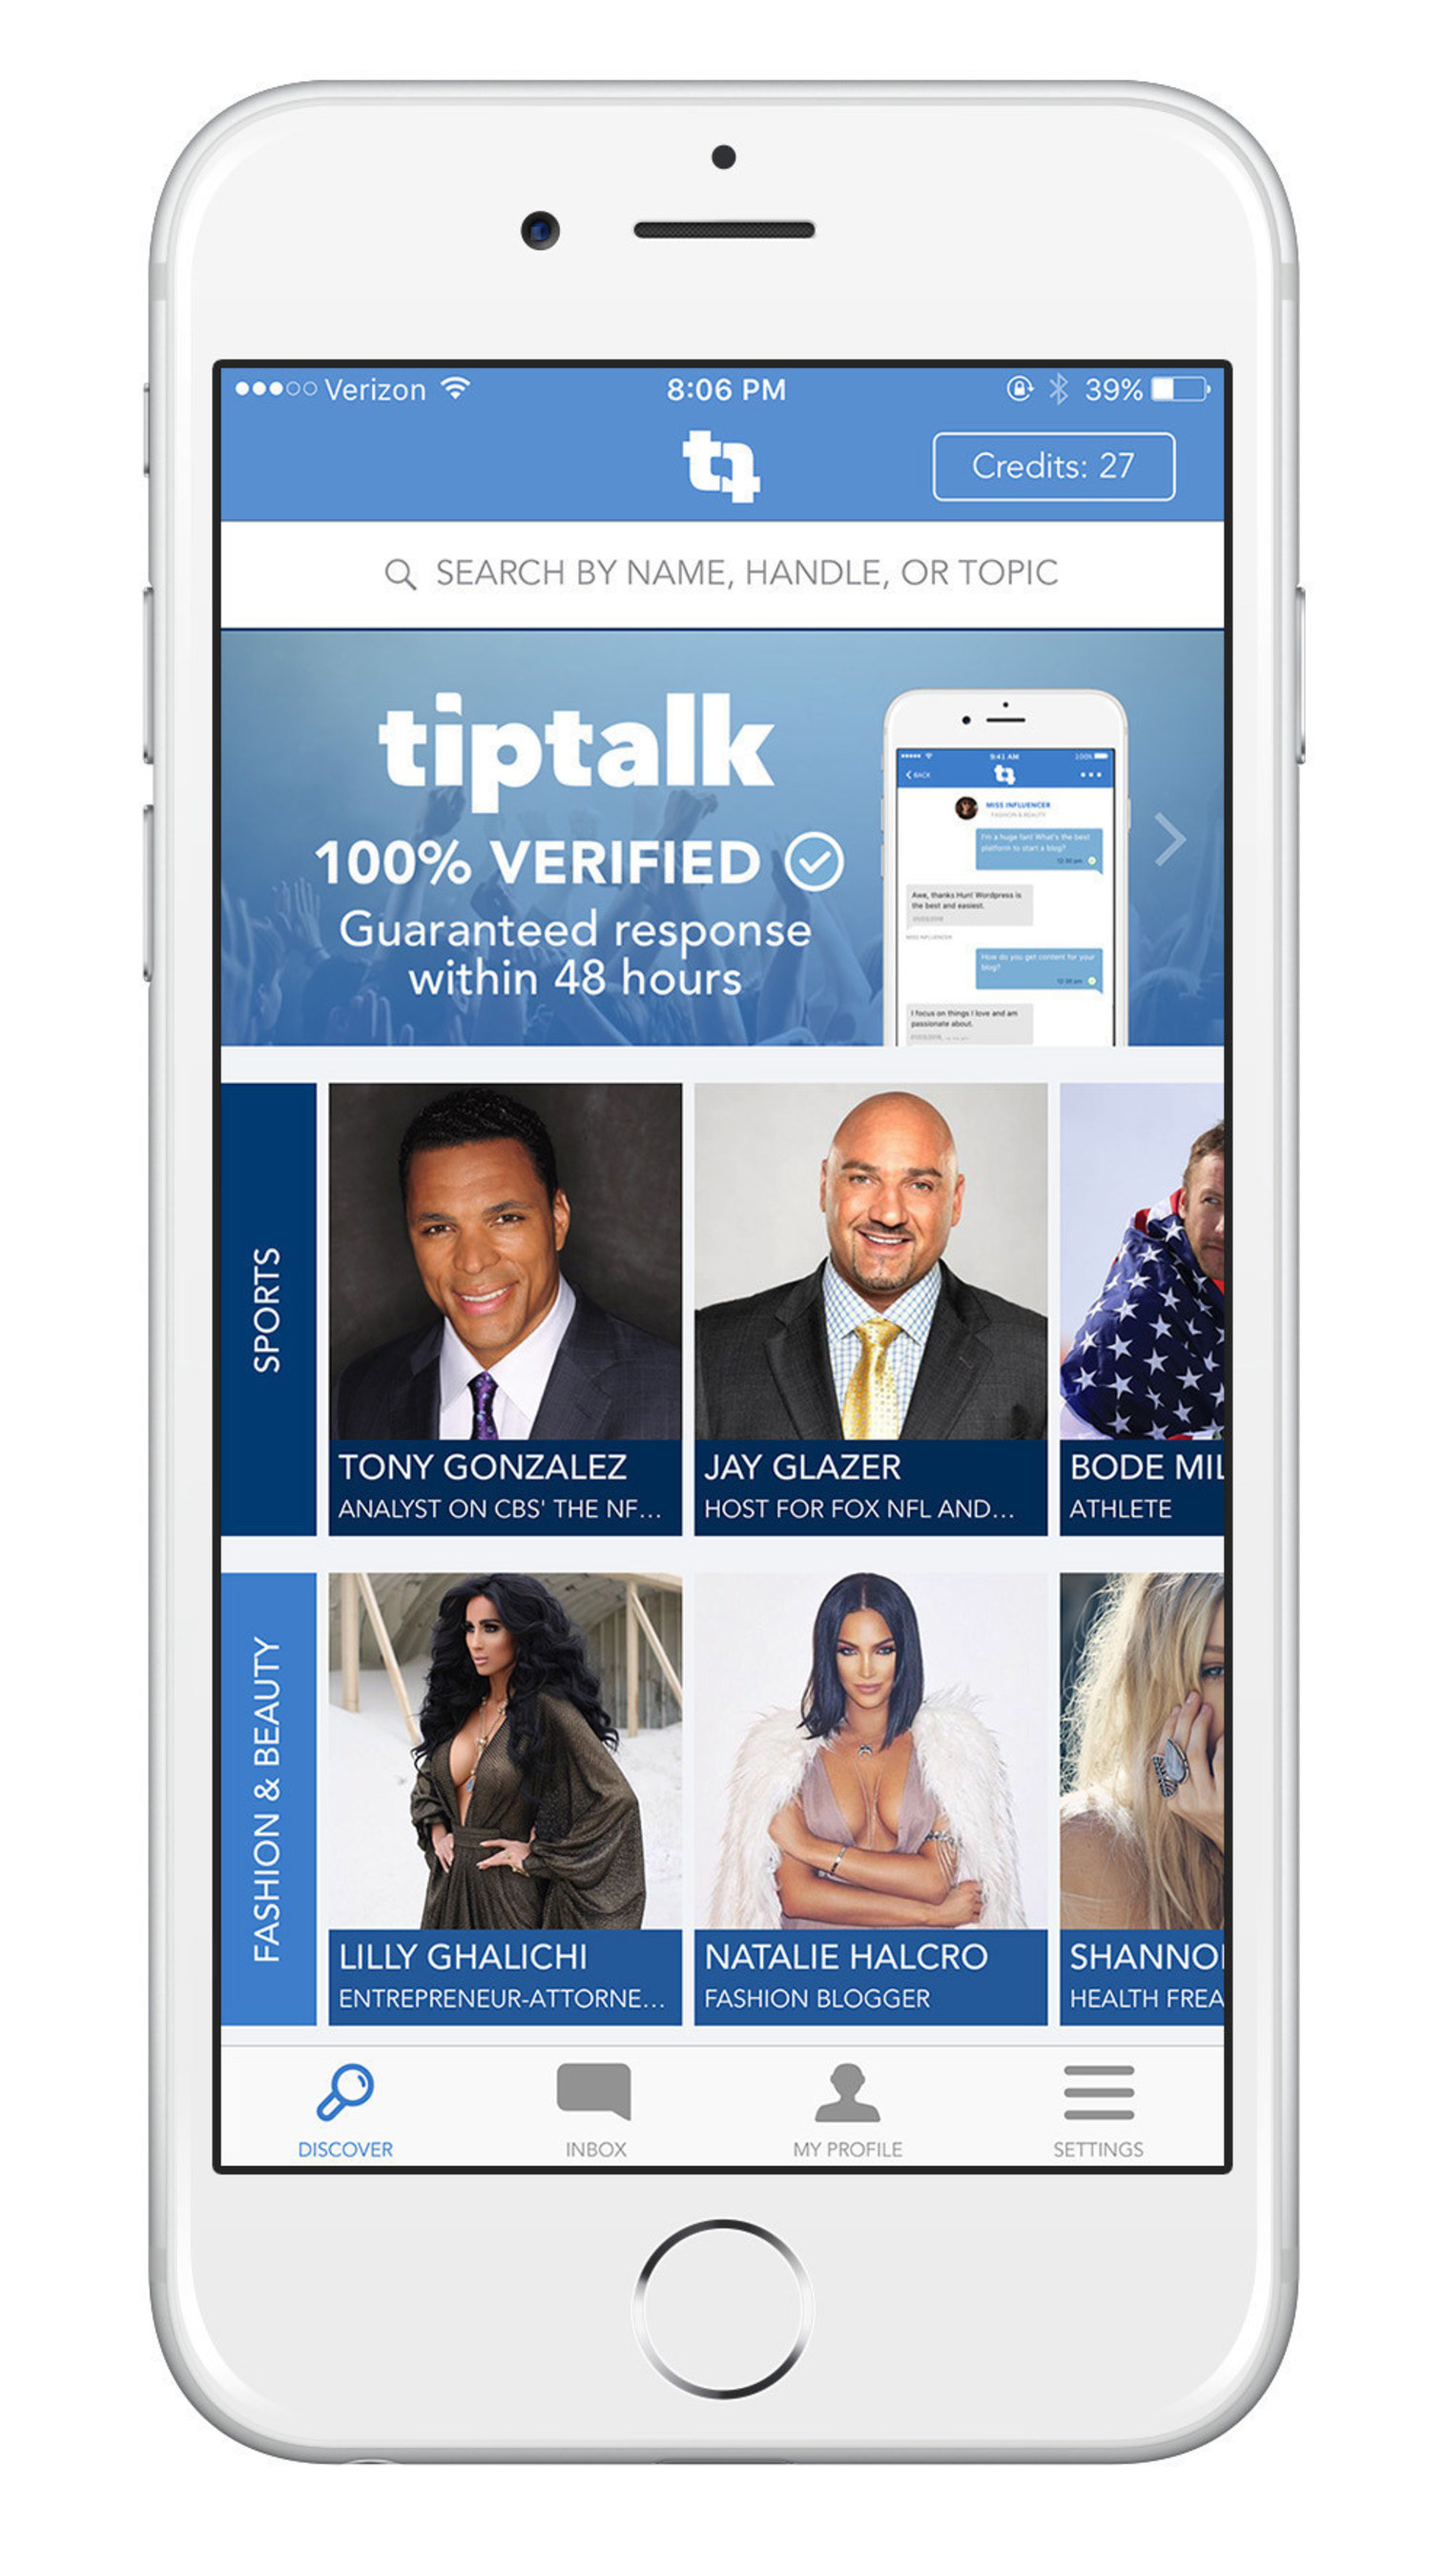 New Messaging Platform TipTalk Gives Fans One-on-One Access to Their Favorite Experts, Influencers and Stars Across Sports, Entertainment and Social Media